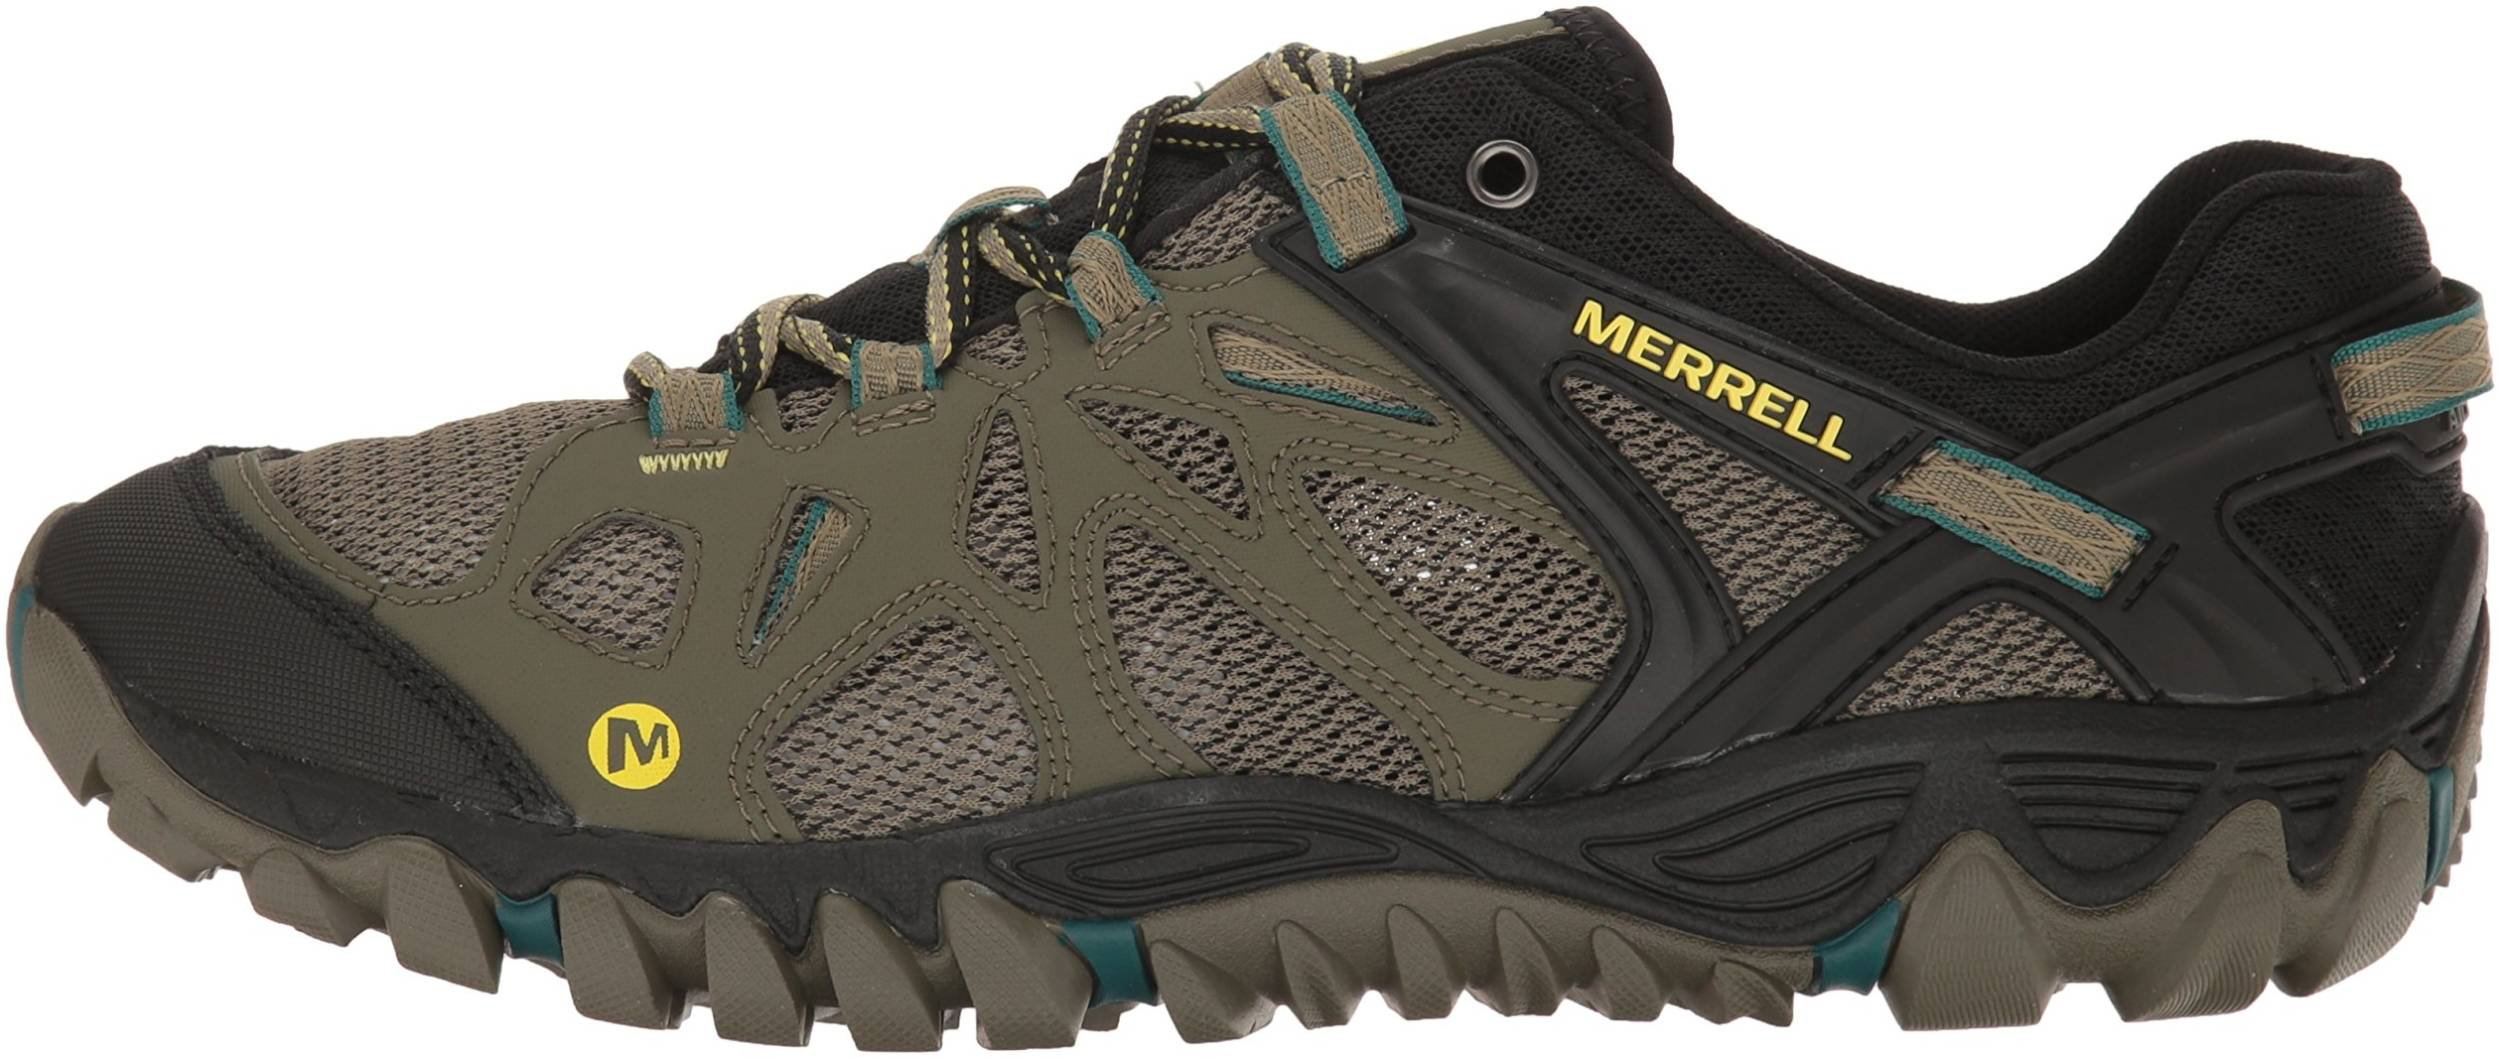 affordable hiking shoes